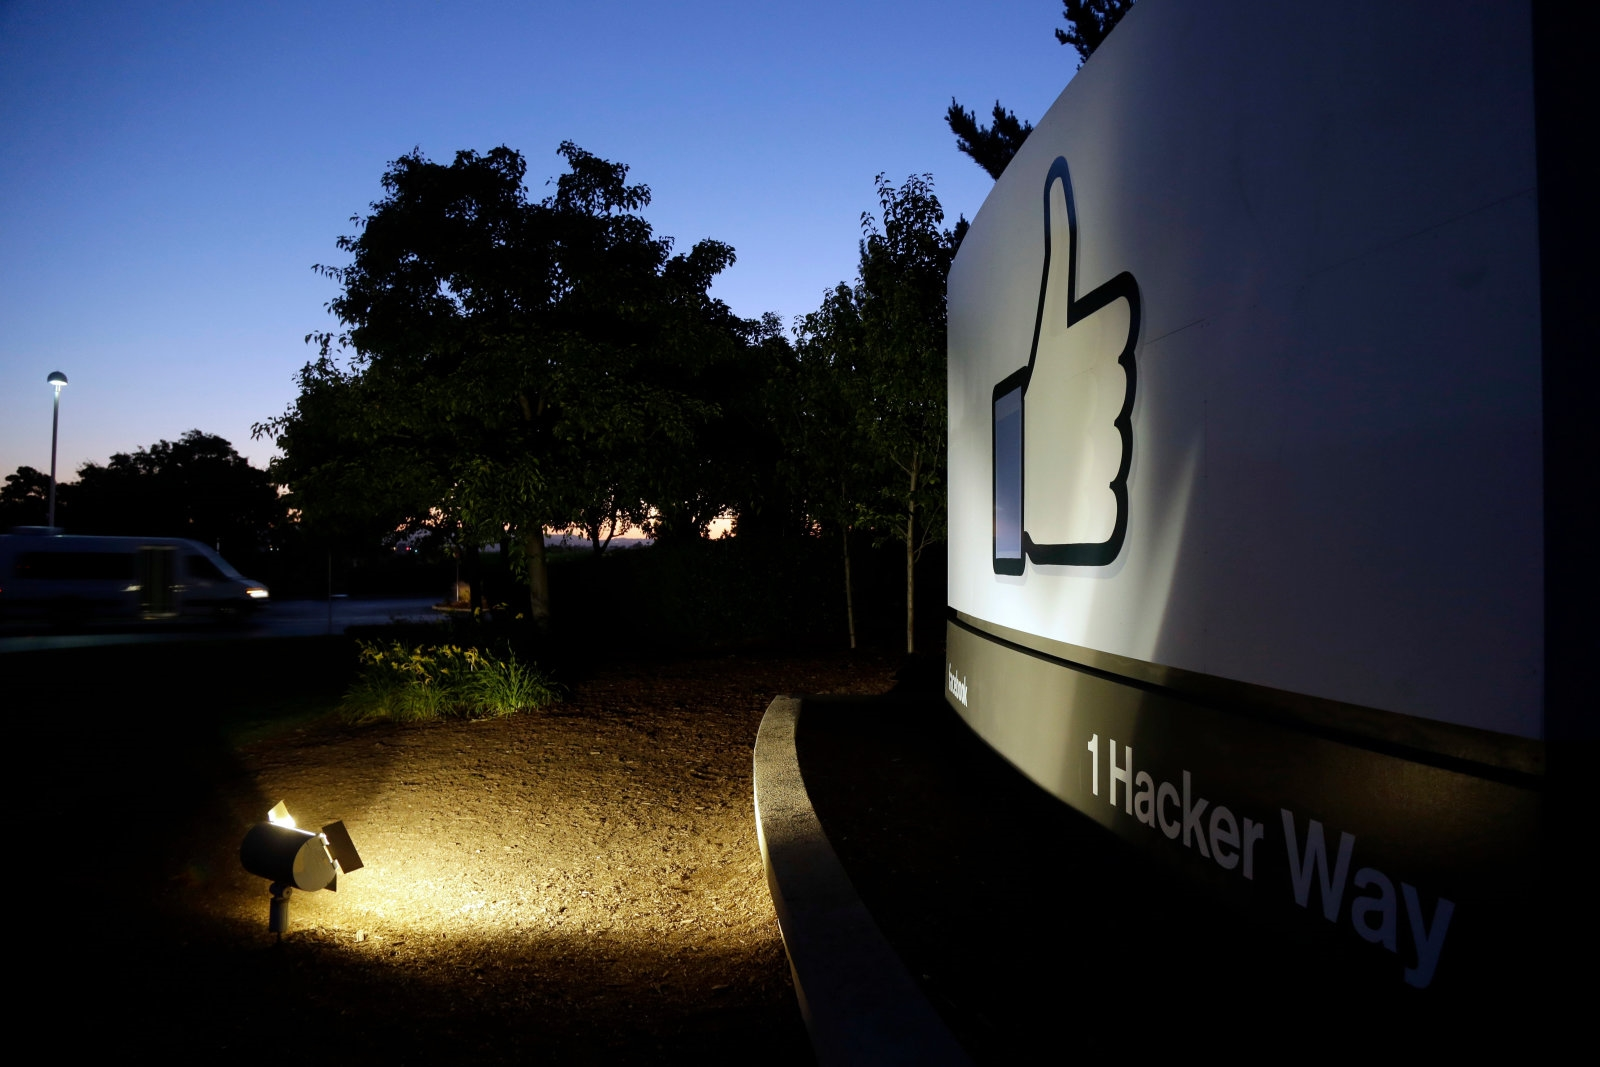 Over 20,000 Facebook employees had access to 600 million user passwords | DeviceDaily.com